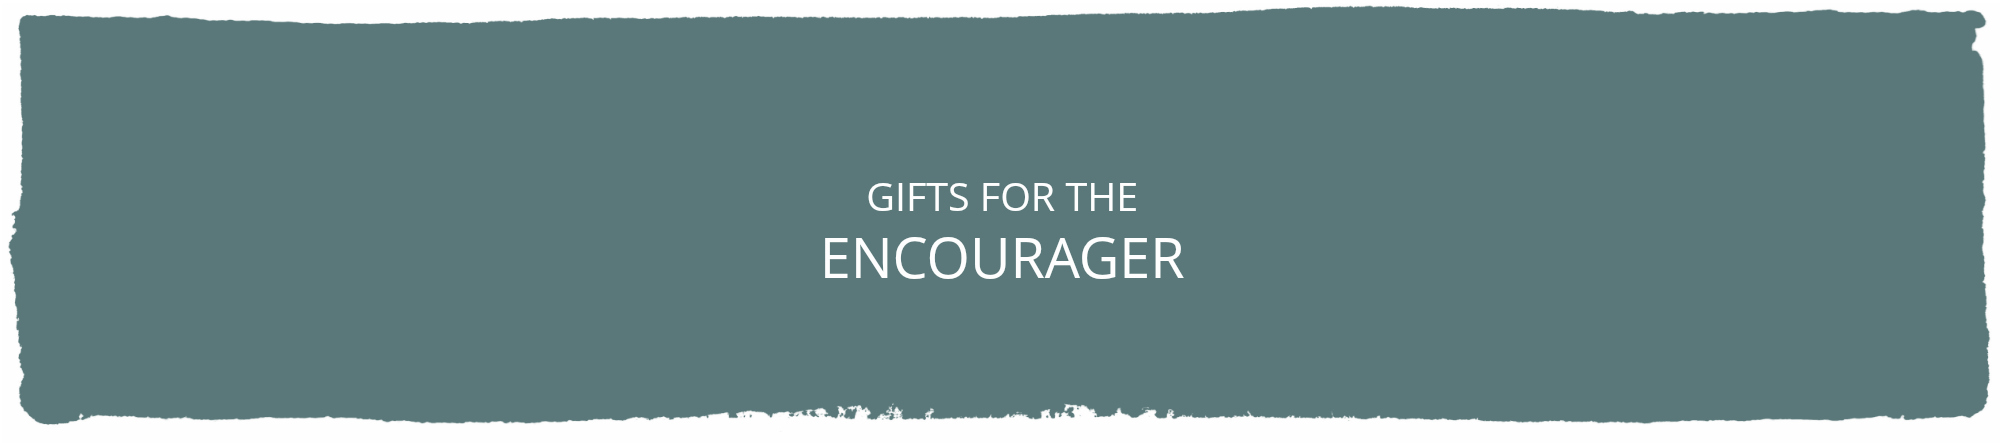 Gifts- Encourager.jpg